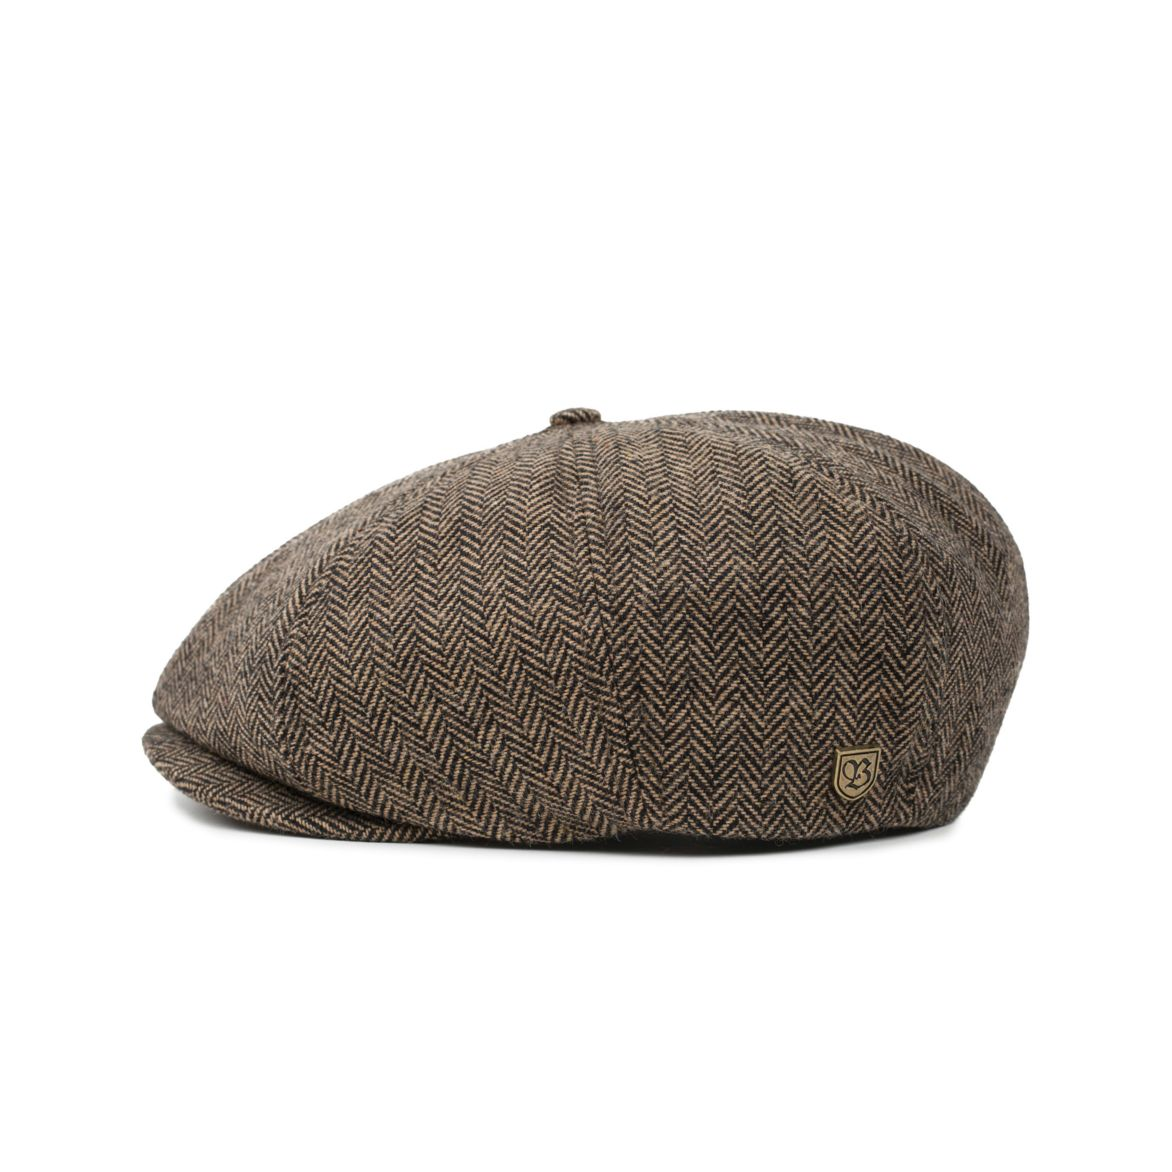 Brixton Brood Snap Cap Brown/Khaki